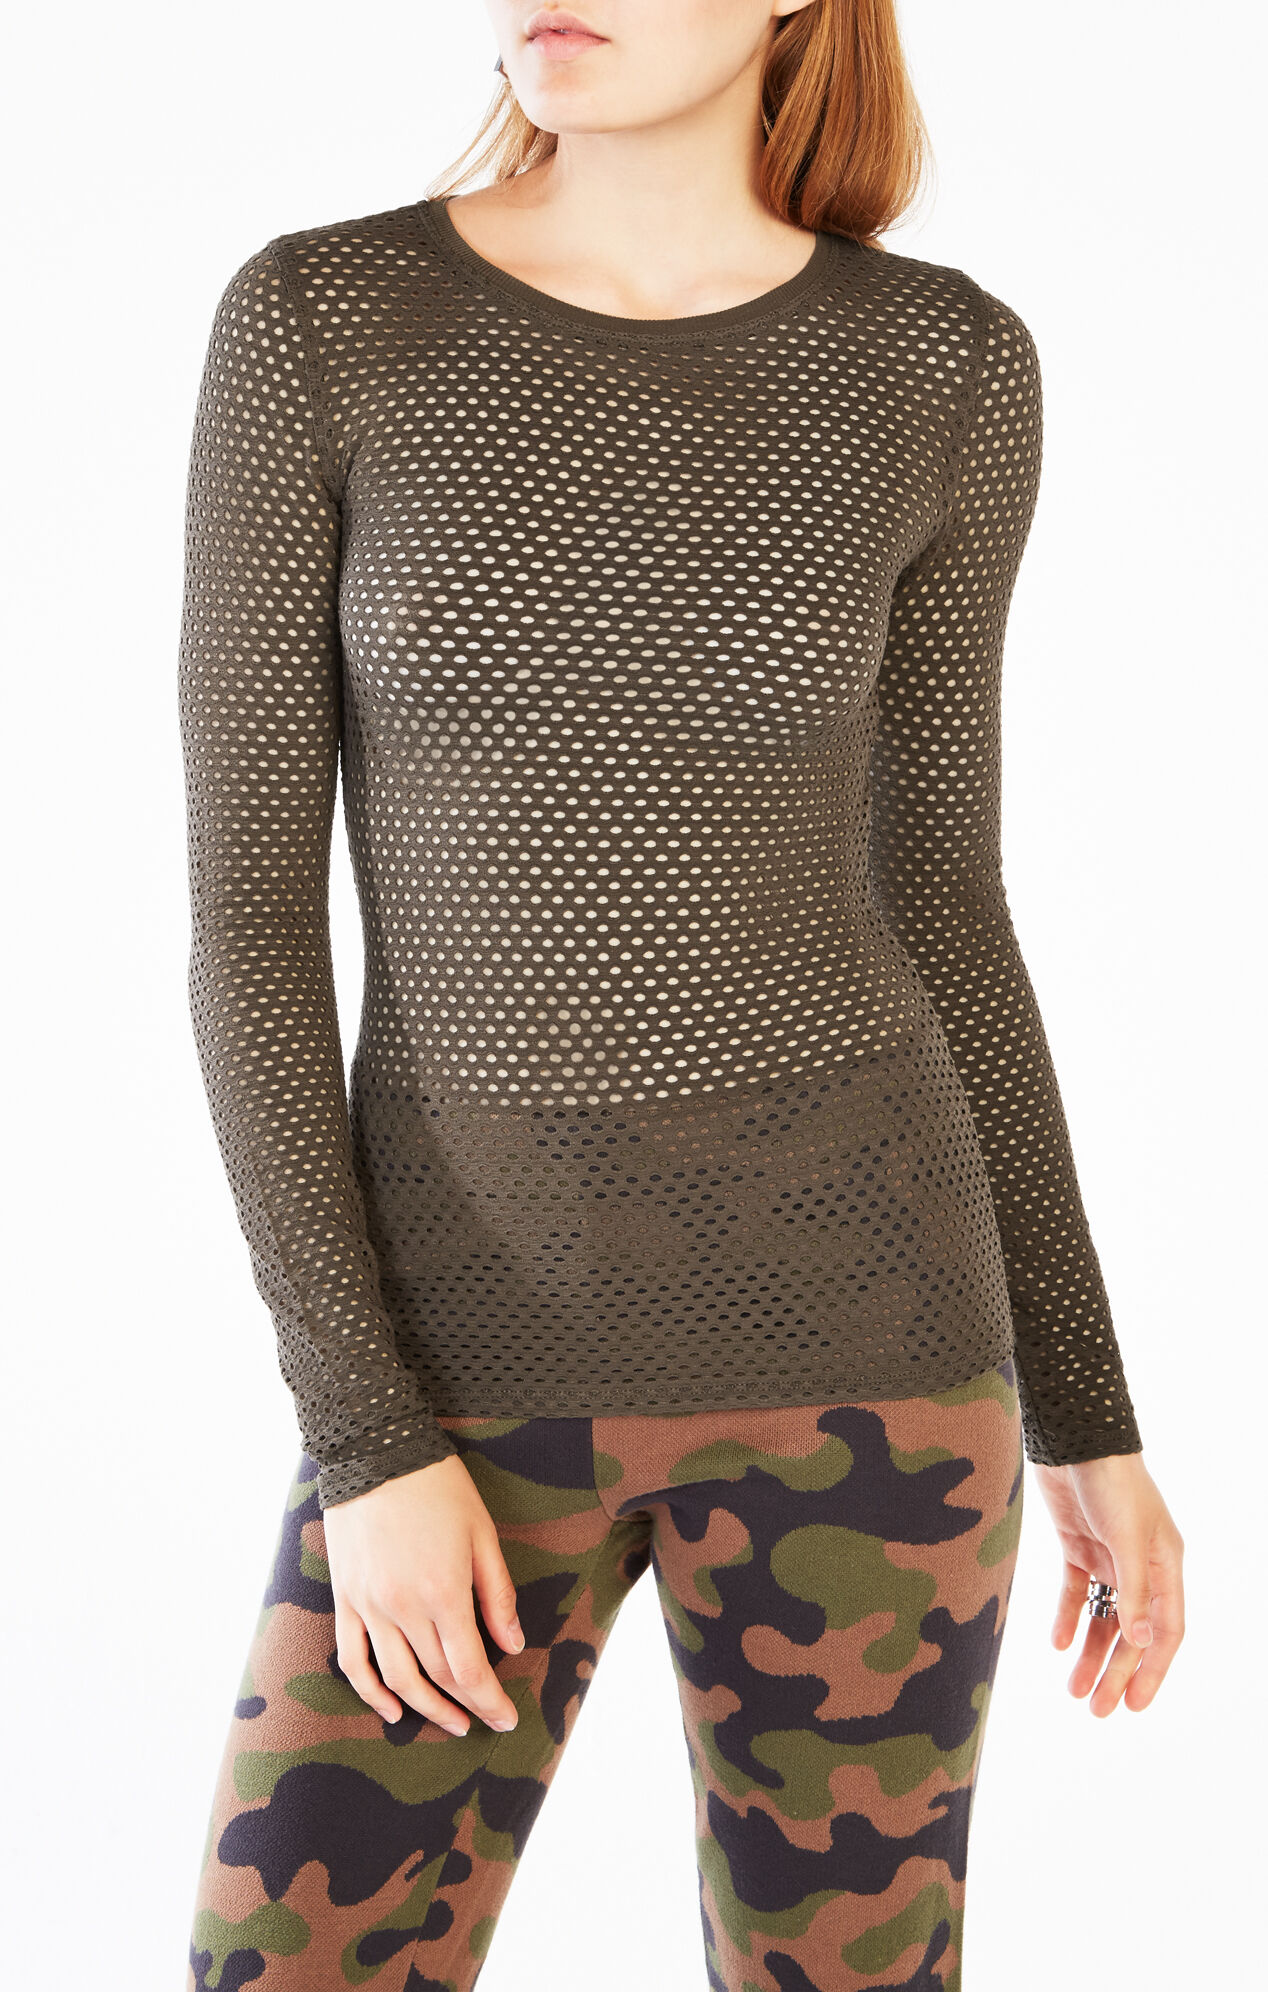 Lulus Exclusive! Give your basics and edgy twist with the Lulus Mesh Is More Black Mesh Long Sleeve Top! This basic jersey knit top, with a rounded neckline, long sleeves, and a relaxed bodice, gets a trendy upgrade from a panel of sheer mesh along the neckline.